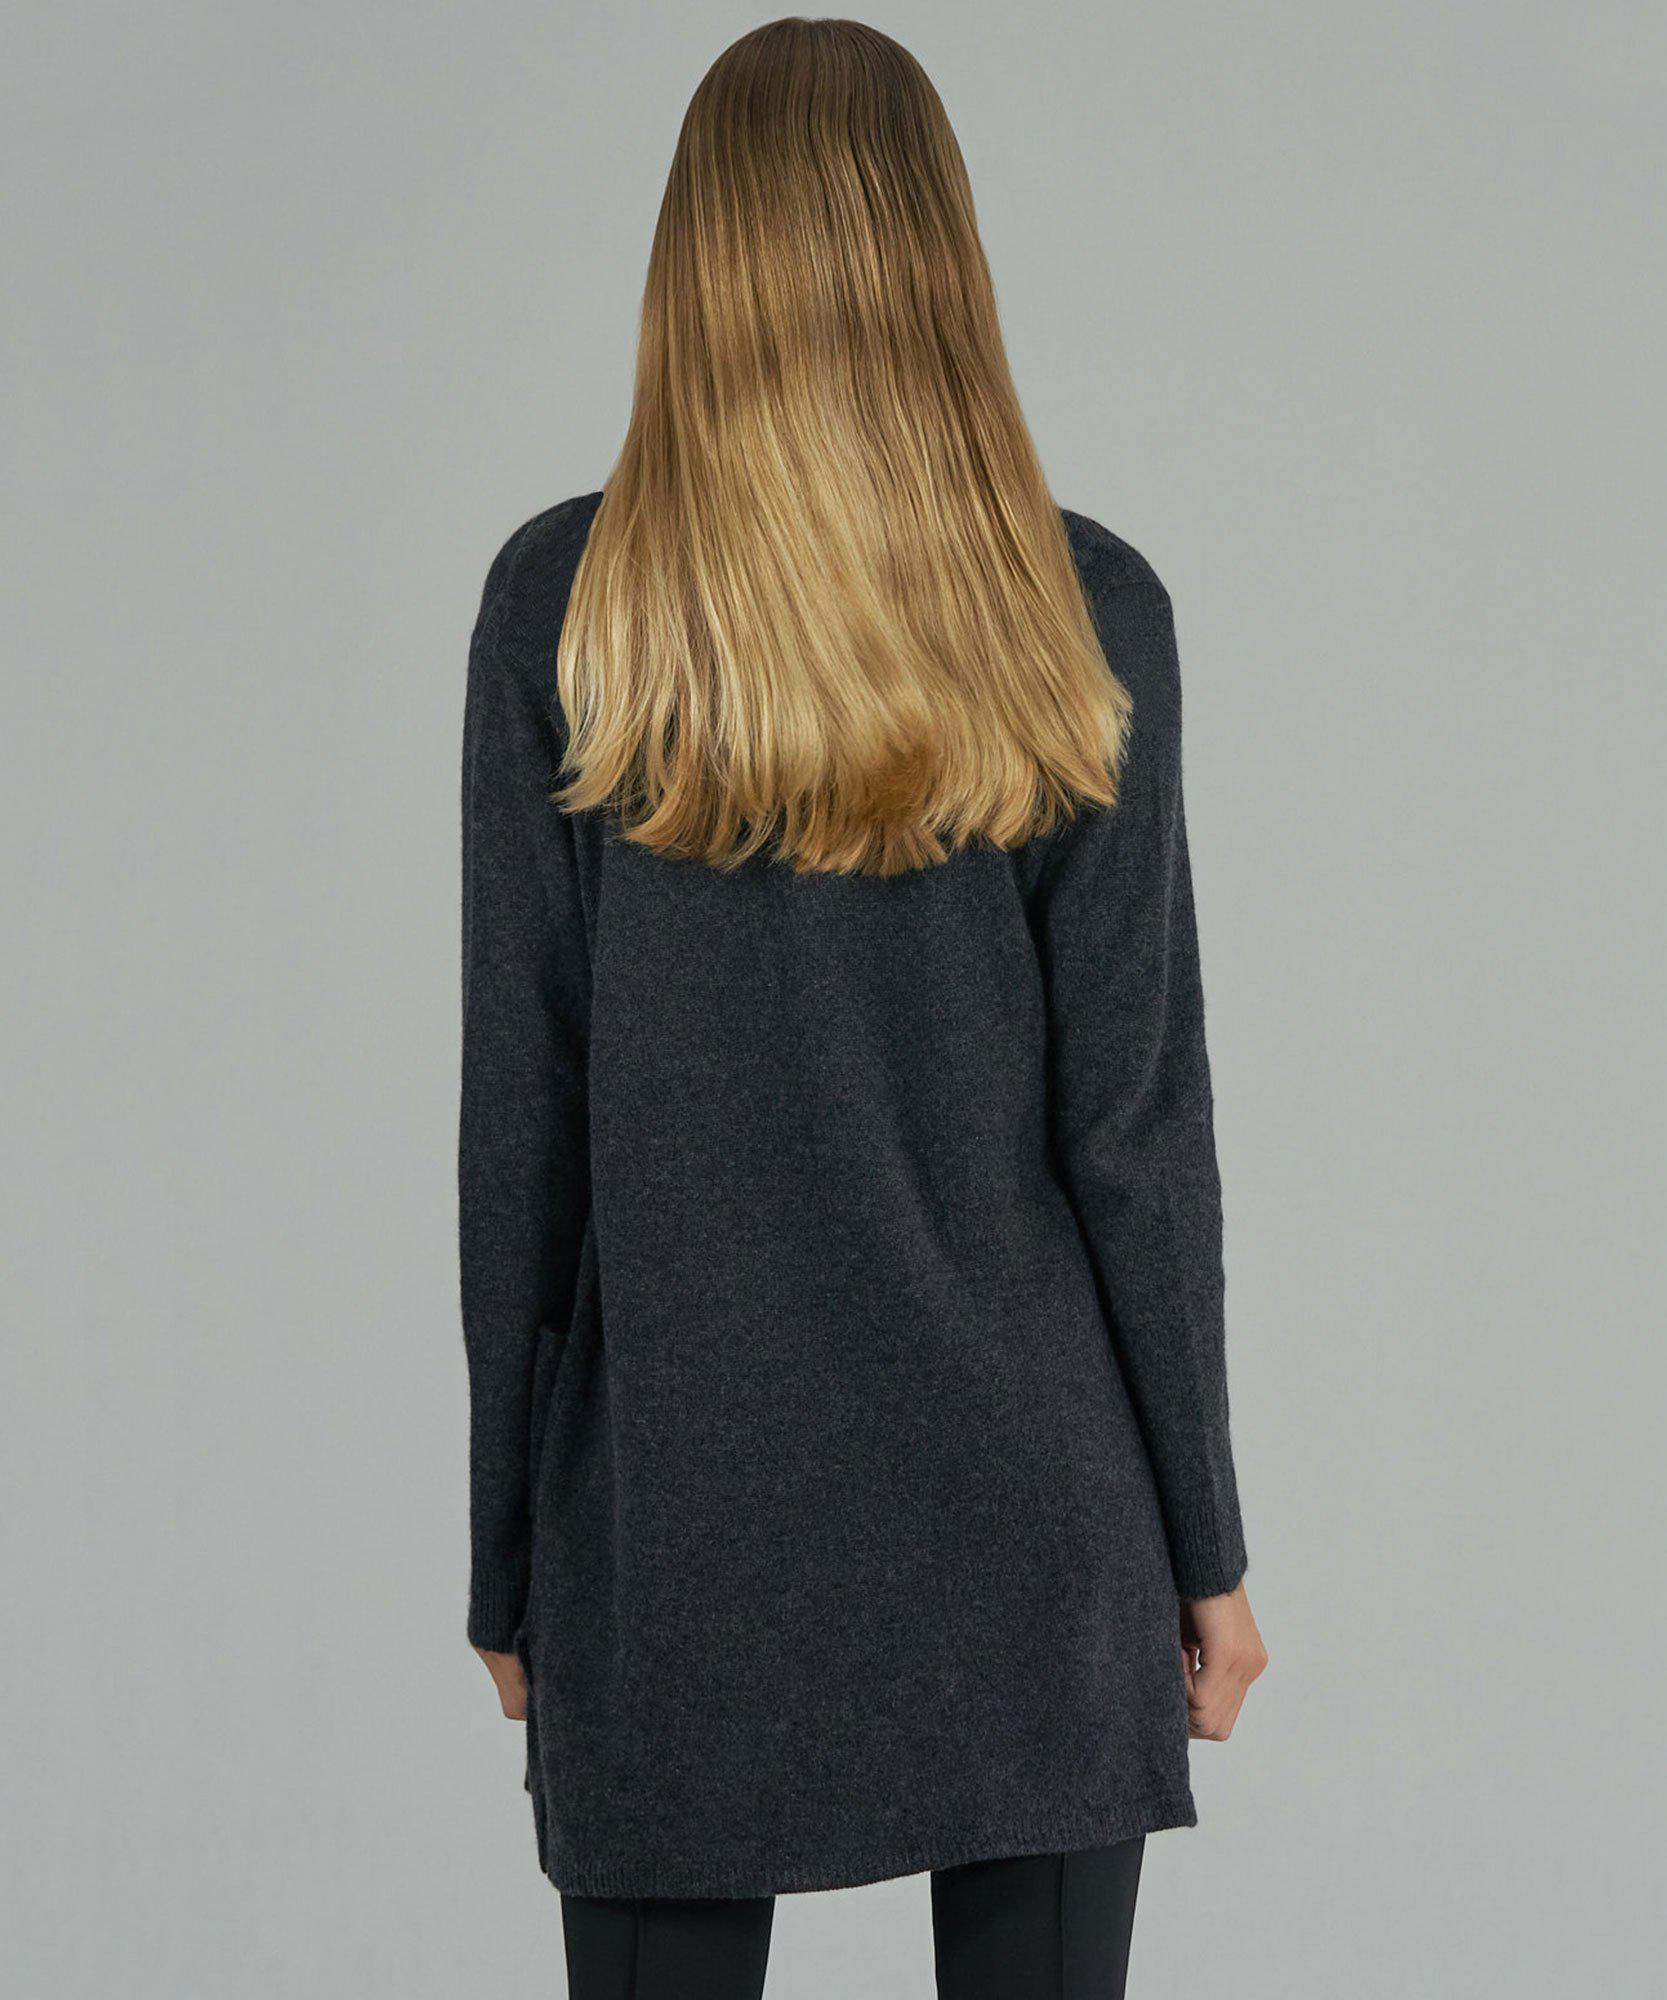 Cashmere Cardigan - Charcoal 2